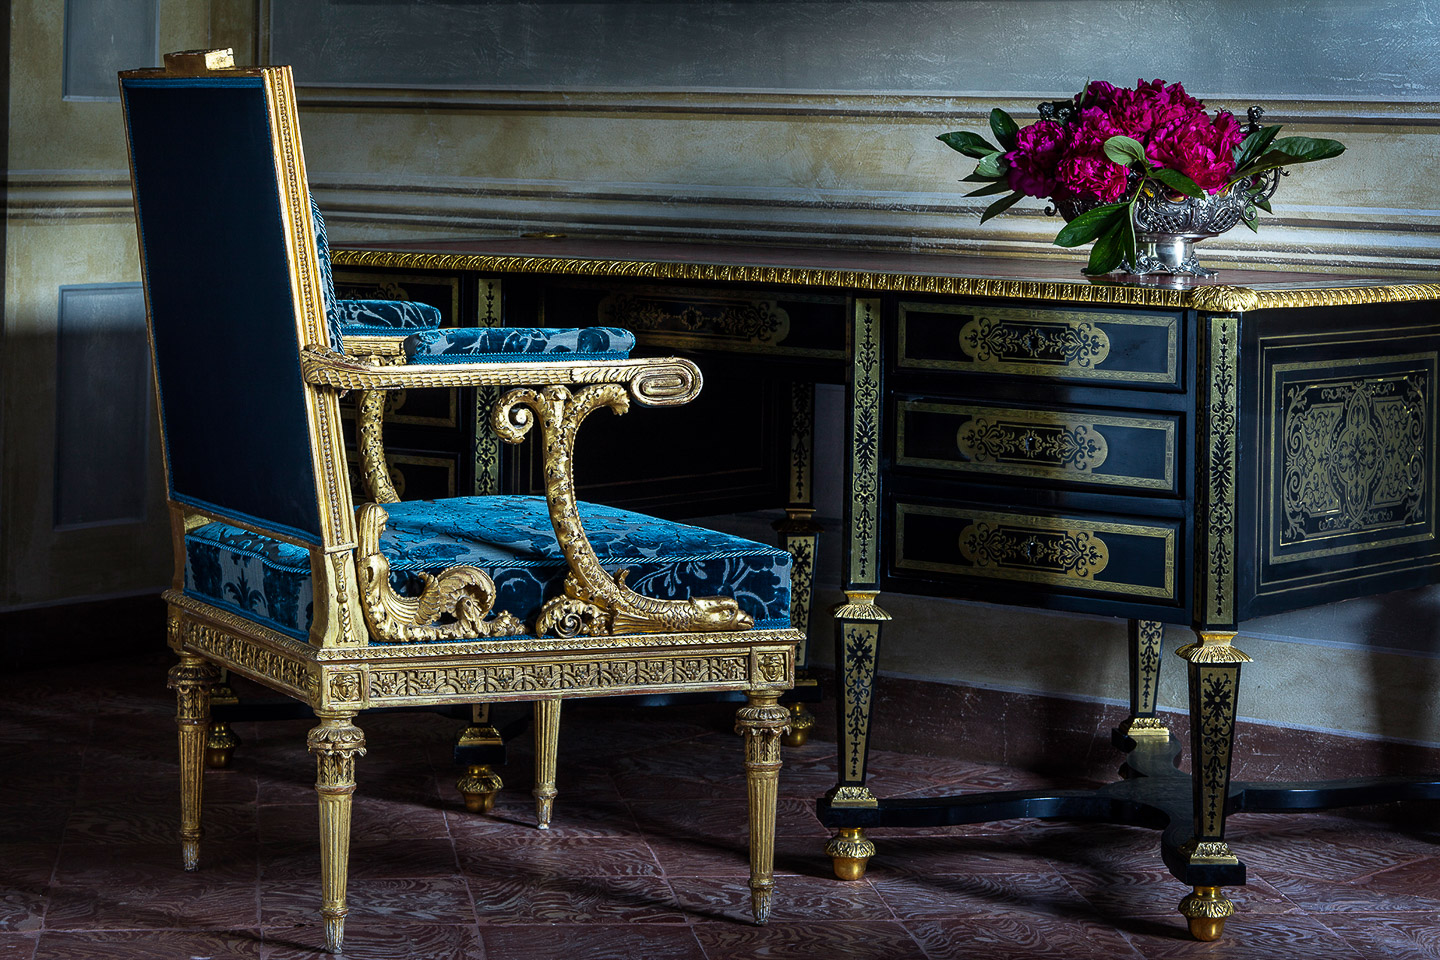 Villa Balbiano elegant lake Como property offering accommodation sumptuous interior design luxury master suite Louis XIV period desk blue chair from Habsburg royal family collection 20000VB int